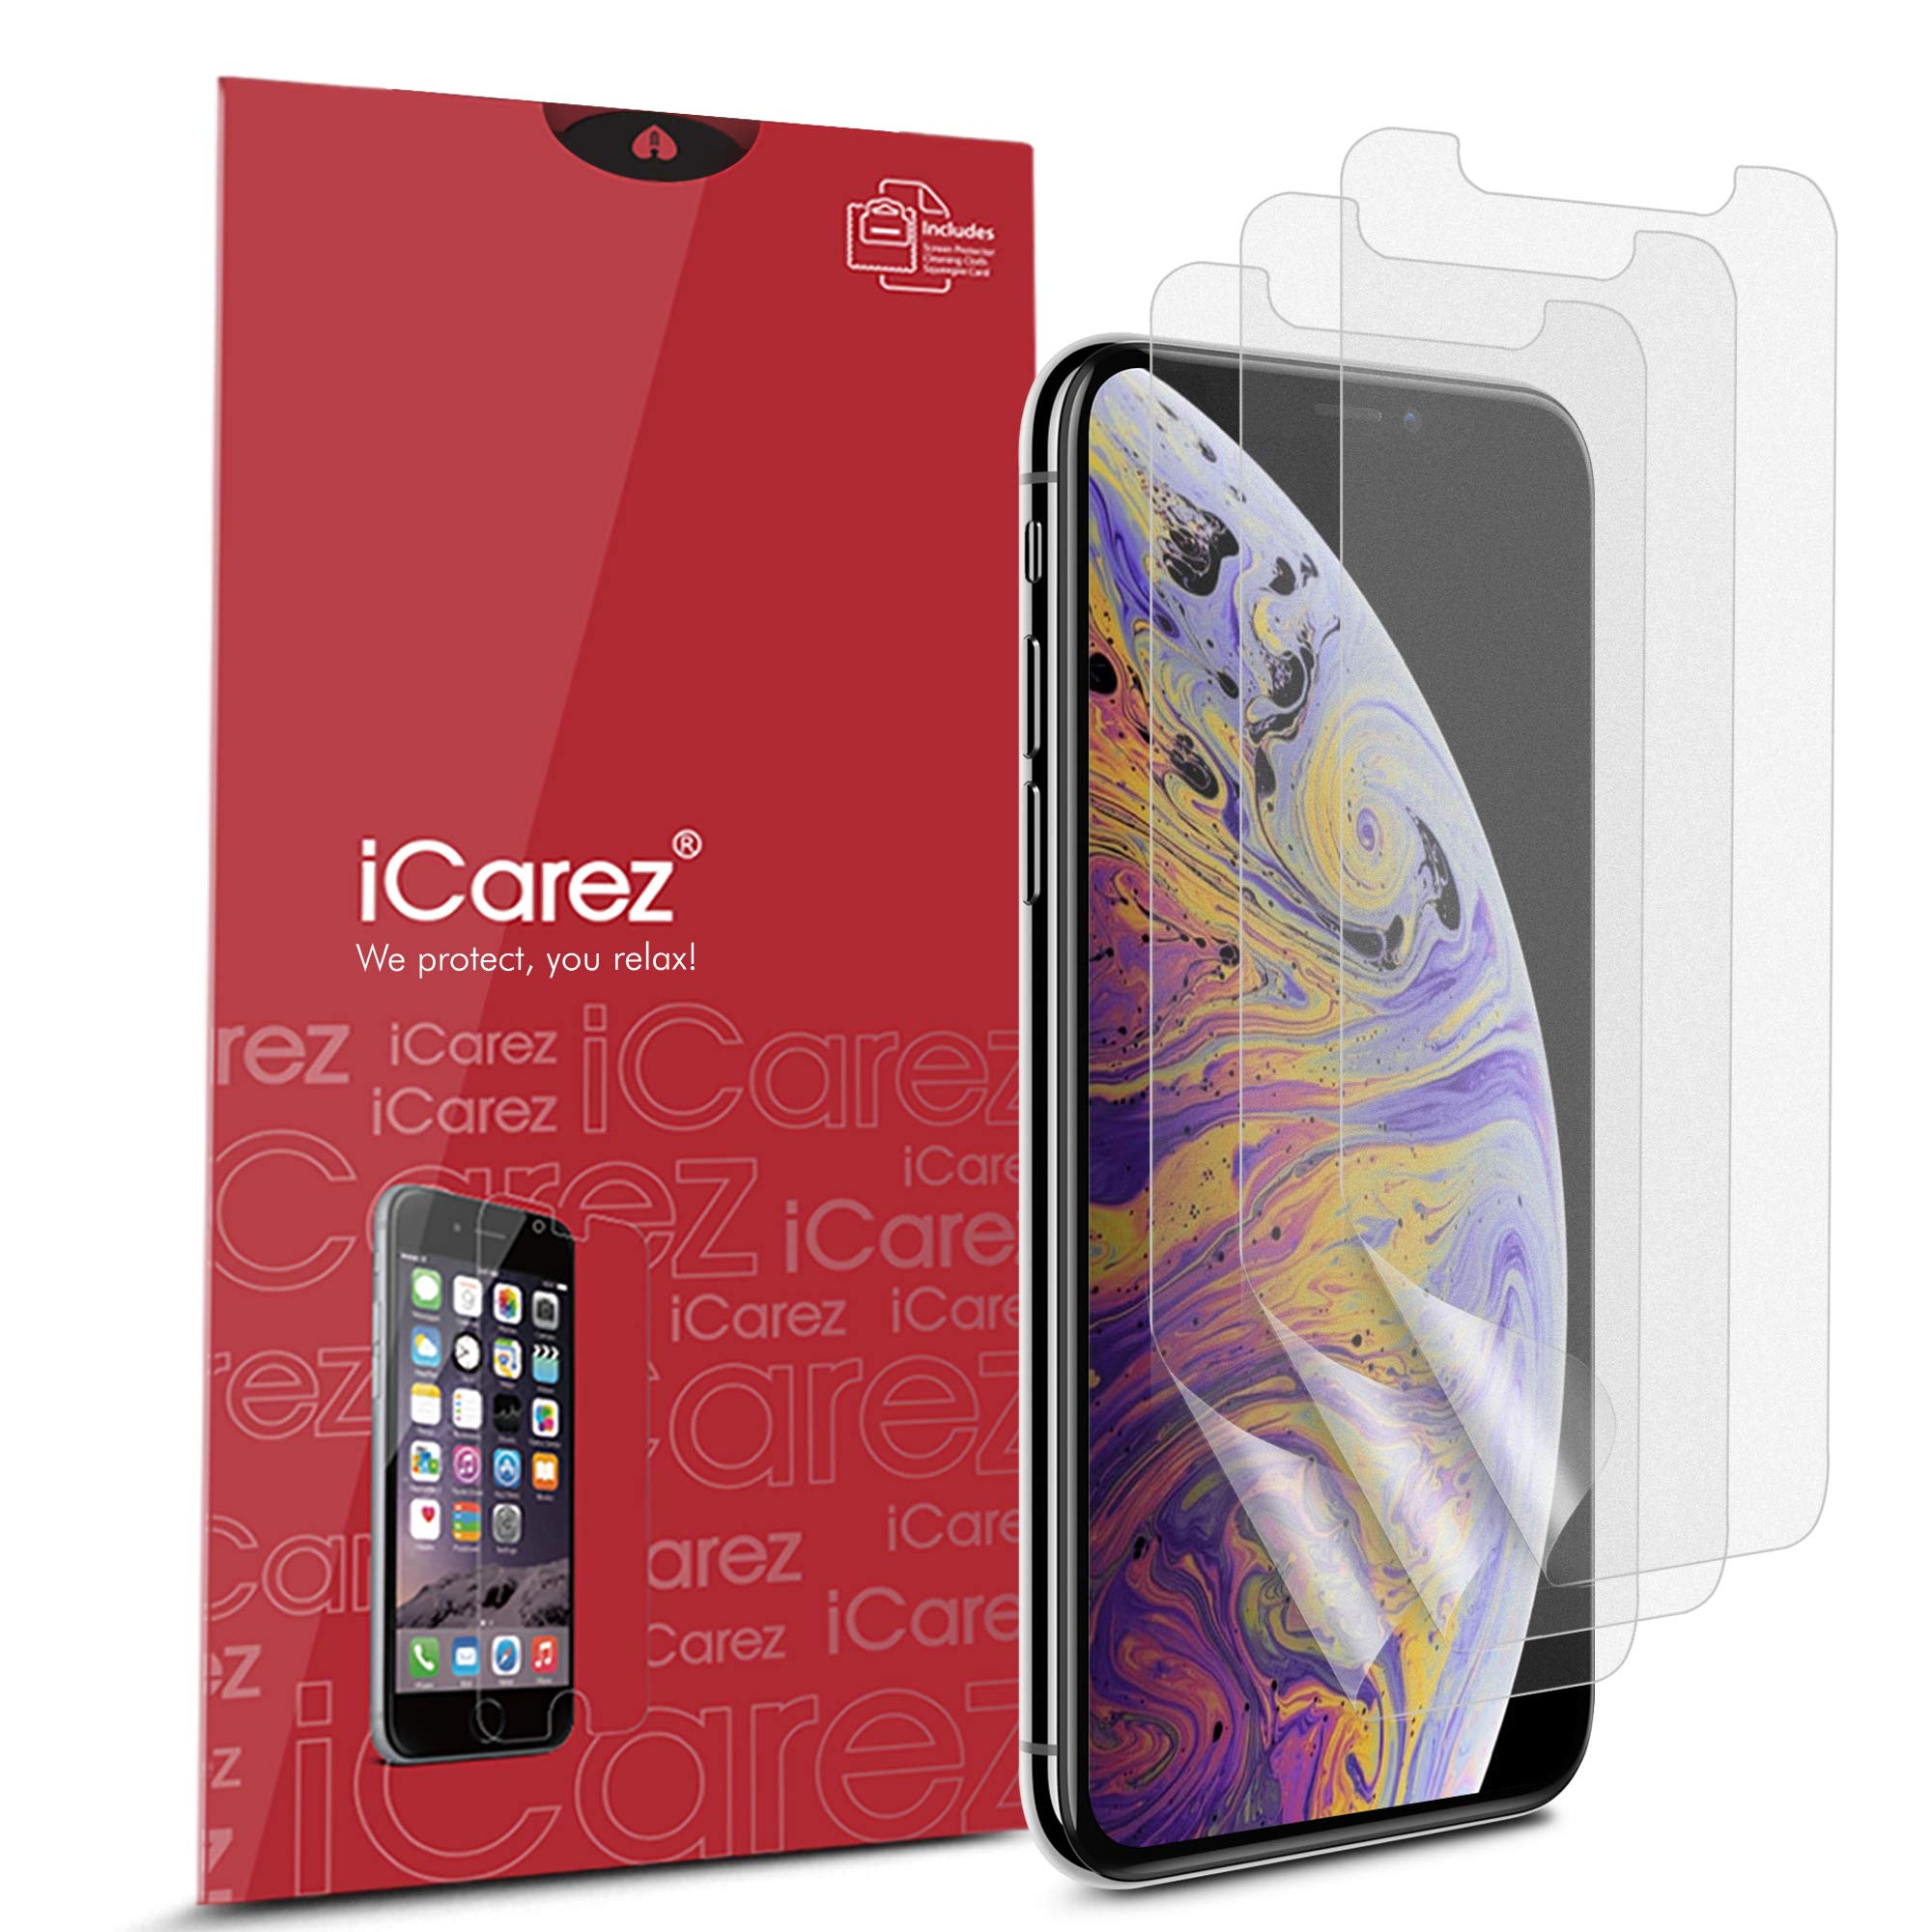 iCarez [HD Anti Glare] Matte Screen Protector for iPhone 11 Pro Max/iPhone Xs Max 6.5-Inch [3 Pack] (Case Friendly) Premium No Bubble Easy to Apply with Hinge Installation